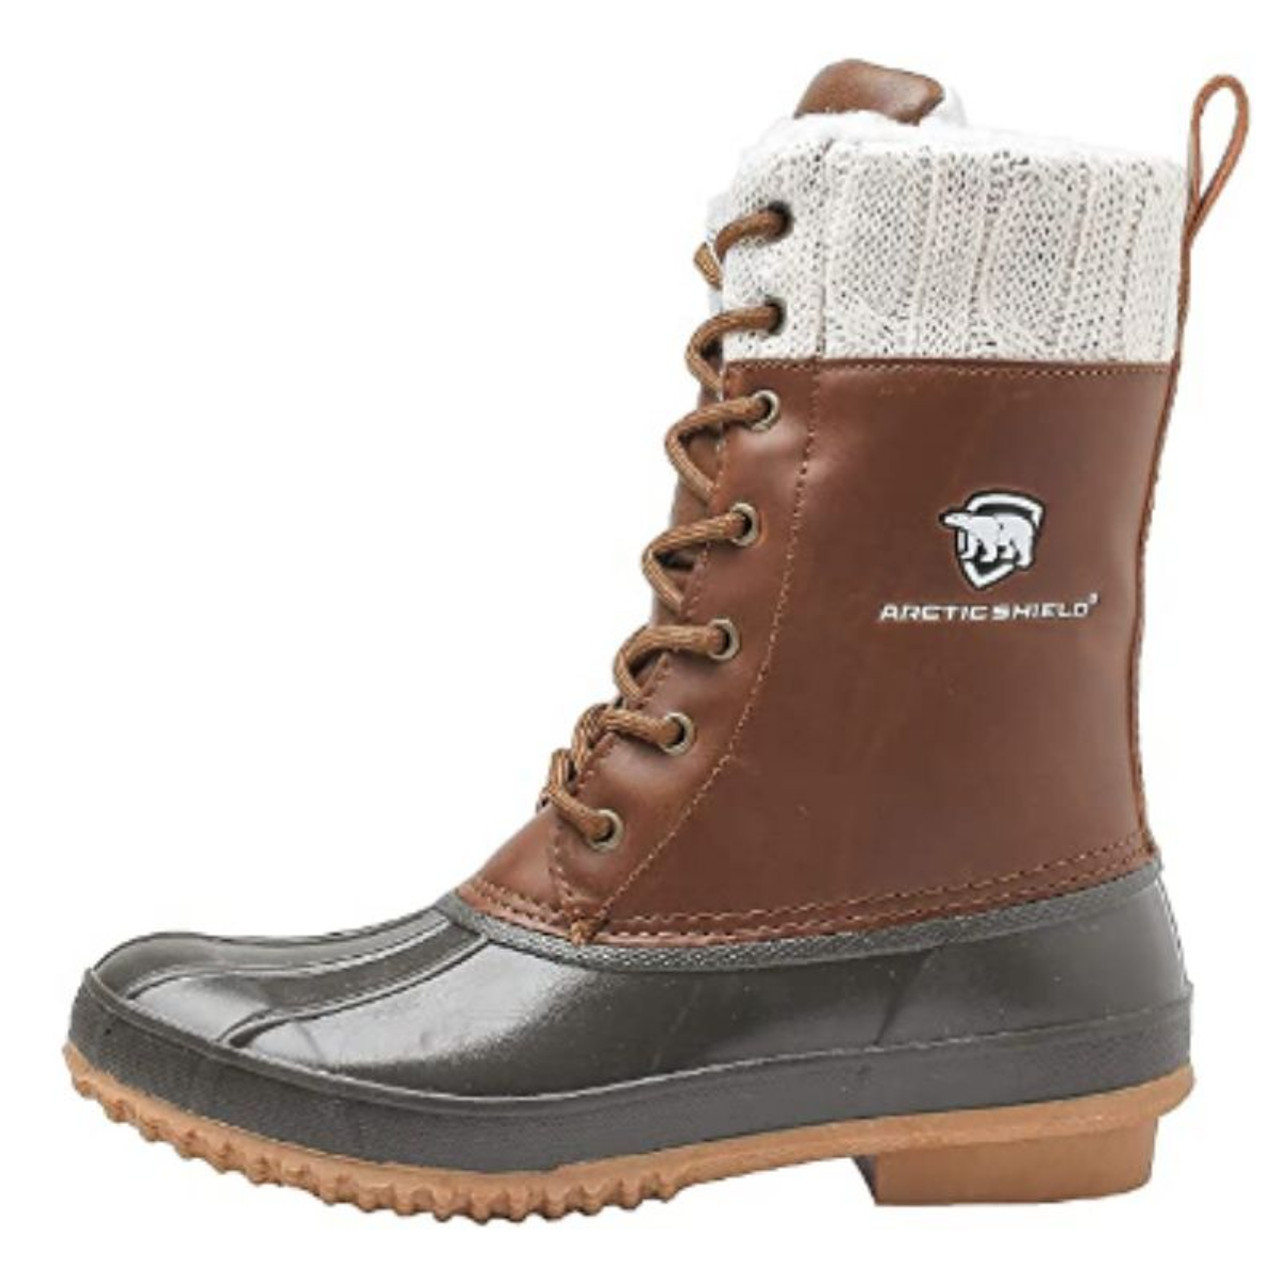 ArcticShield Women's Debra Duck Bean Boots - Waterproof, Insulated, Lace up, for Rain and Snow